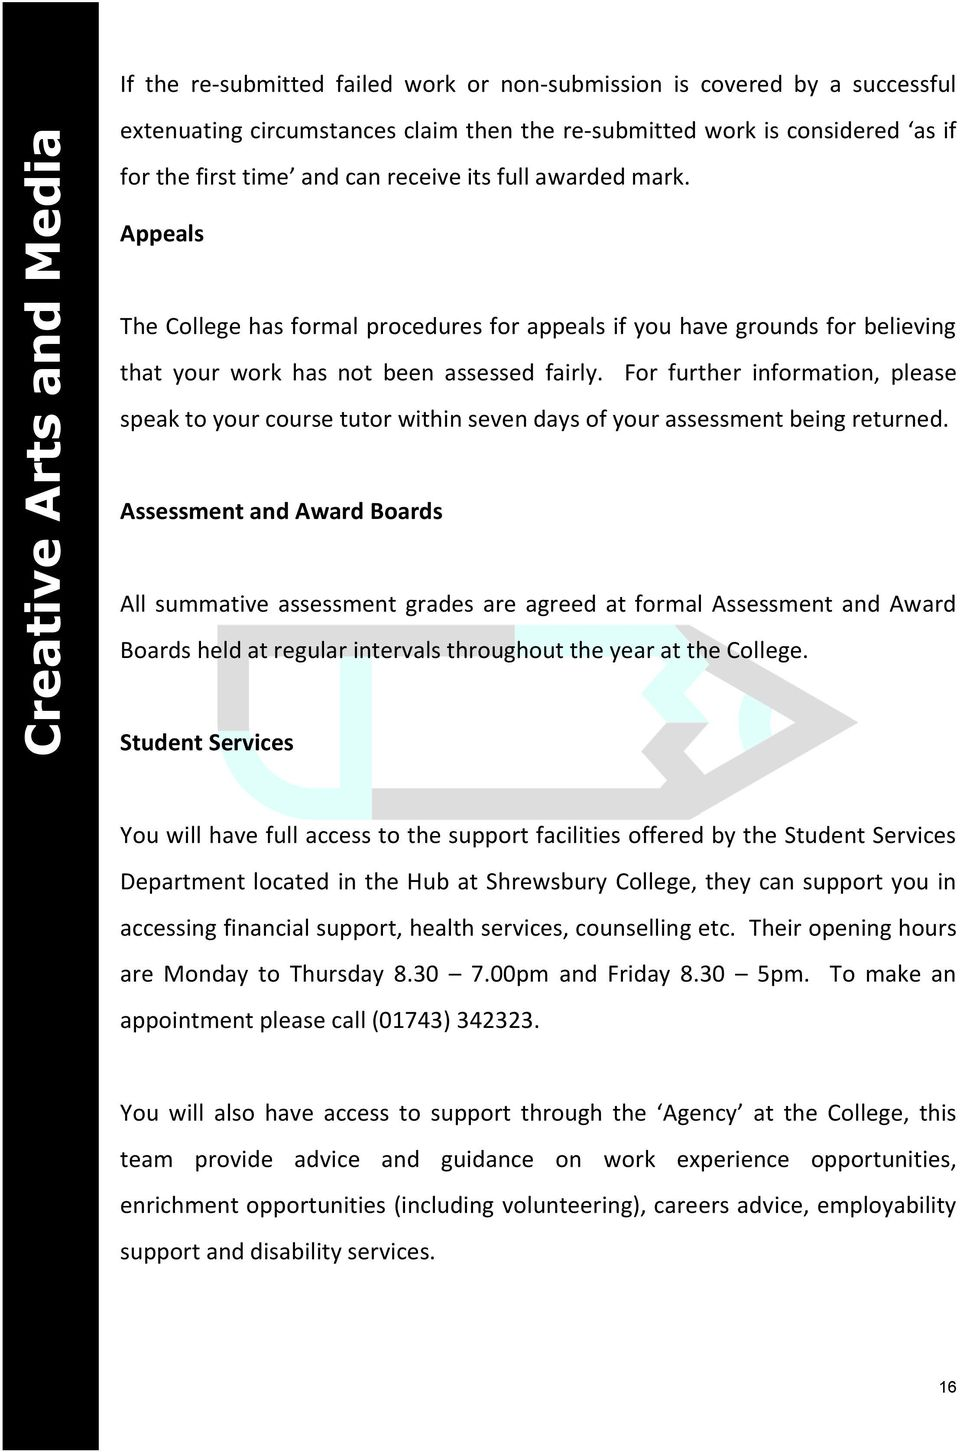 For further information, please speak to your course tutor within seven days of your assessment being returned.